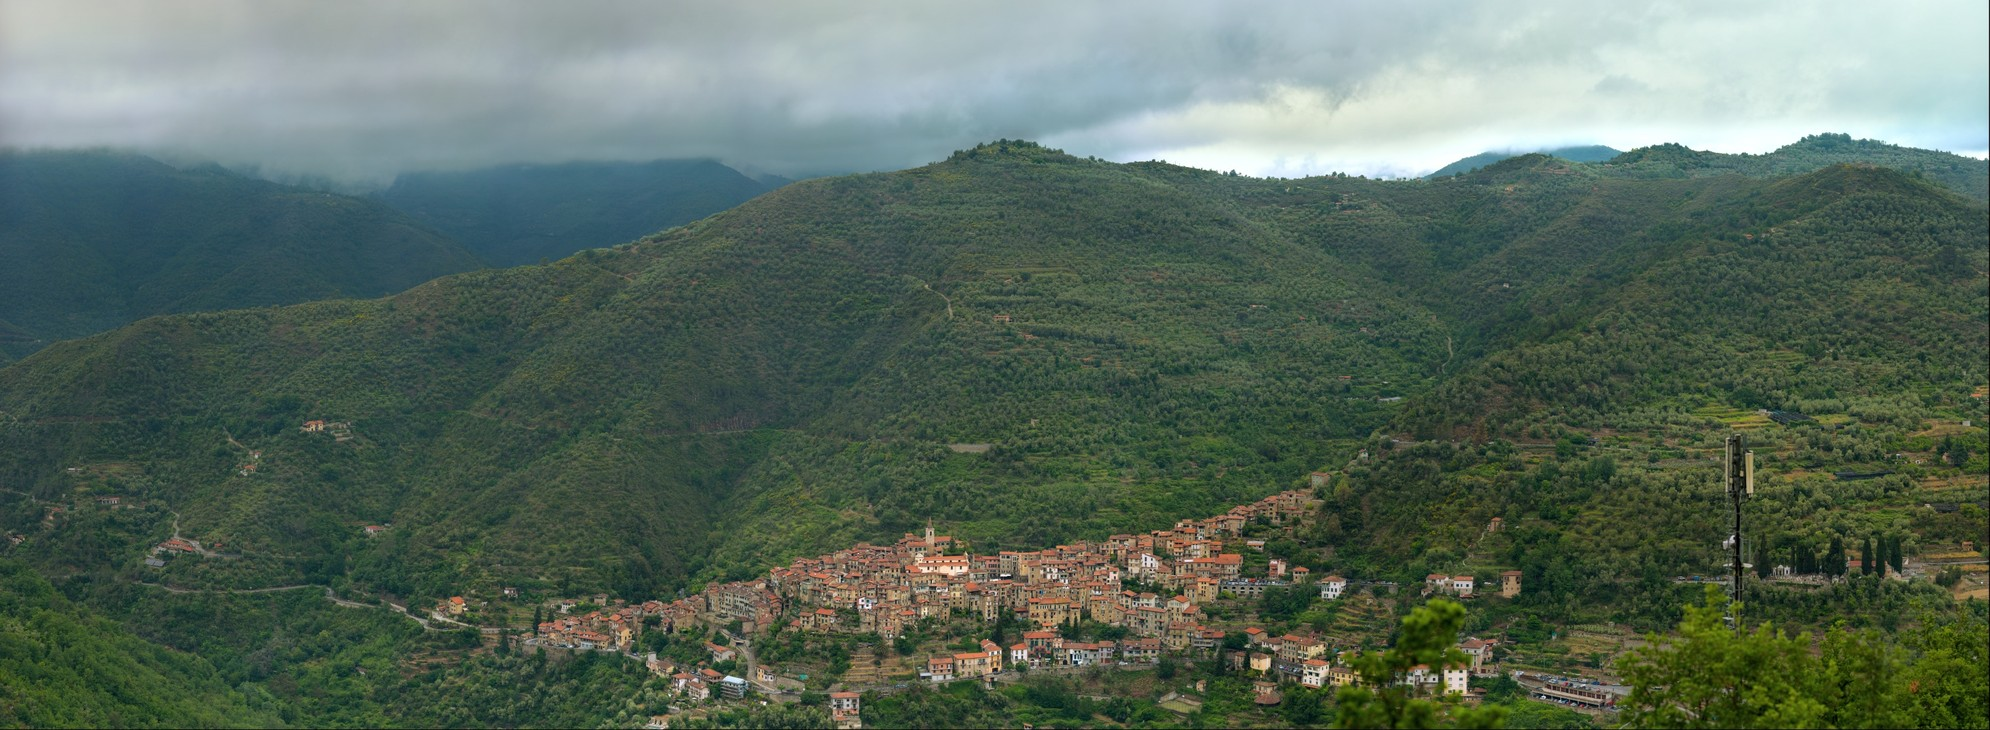 Apricale 01, Italy Final